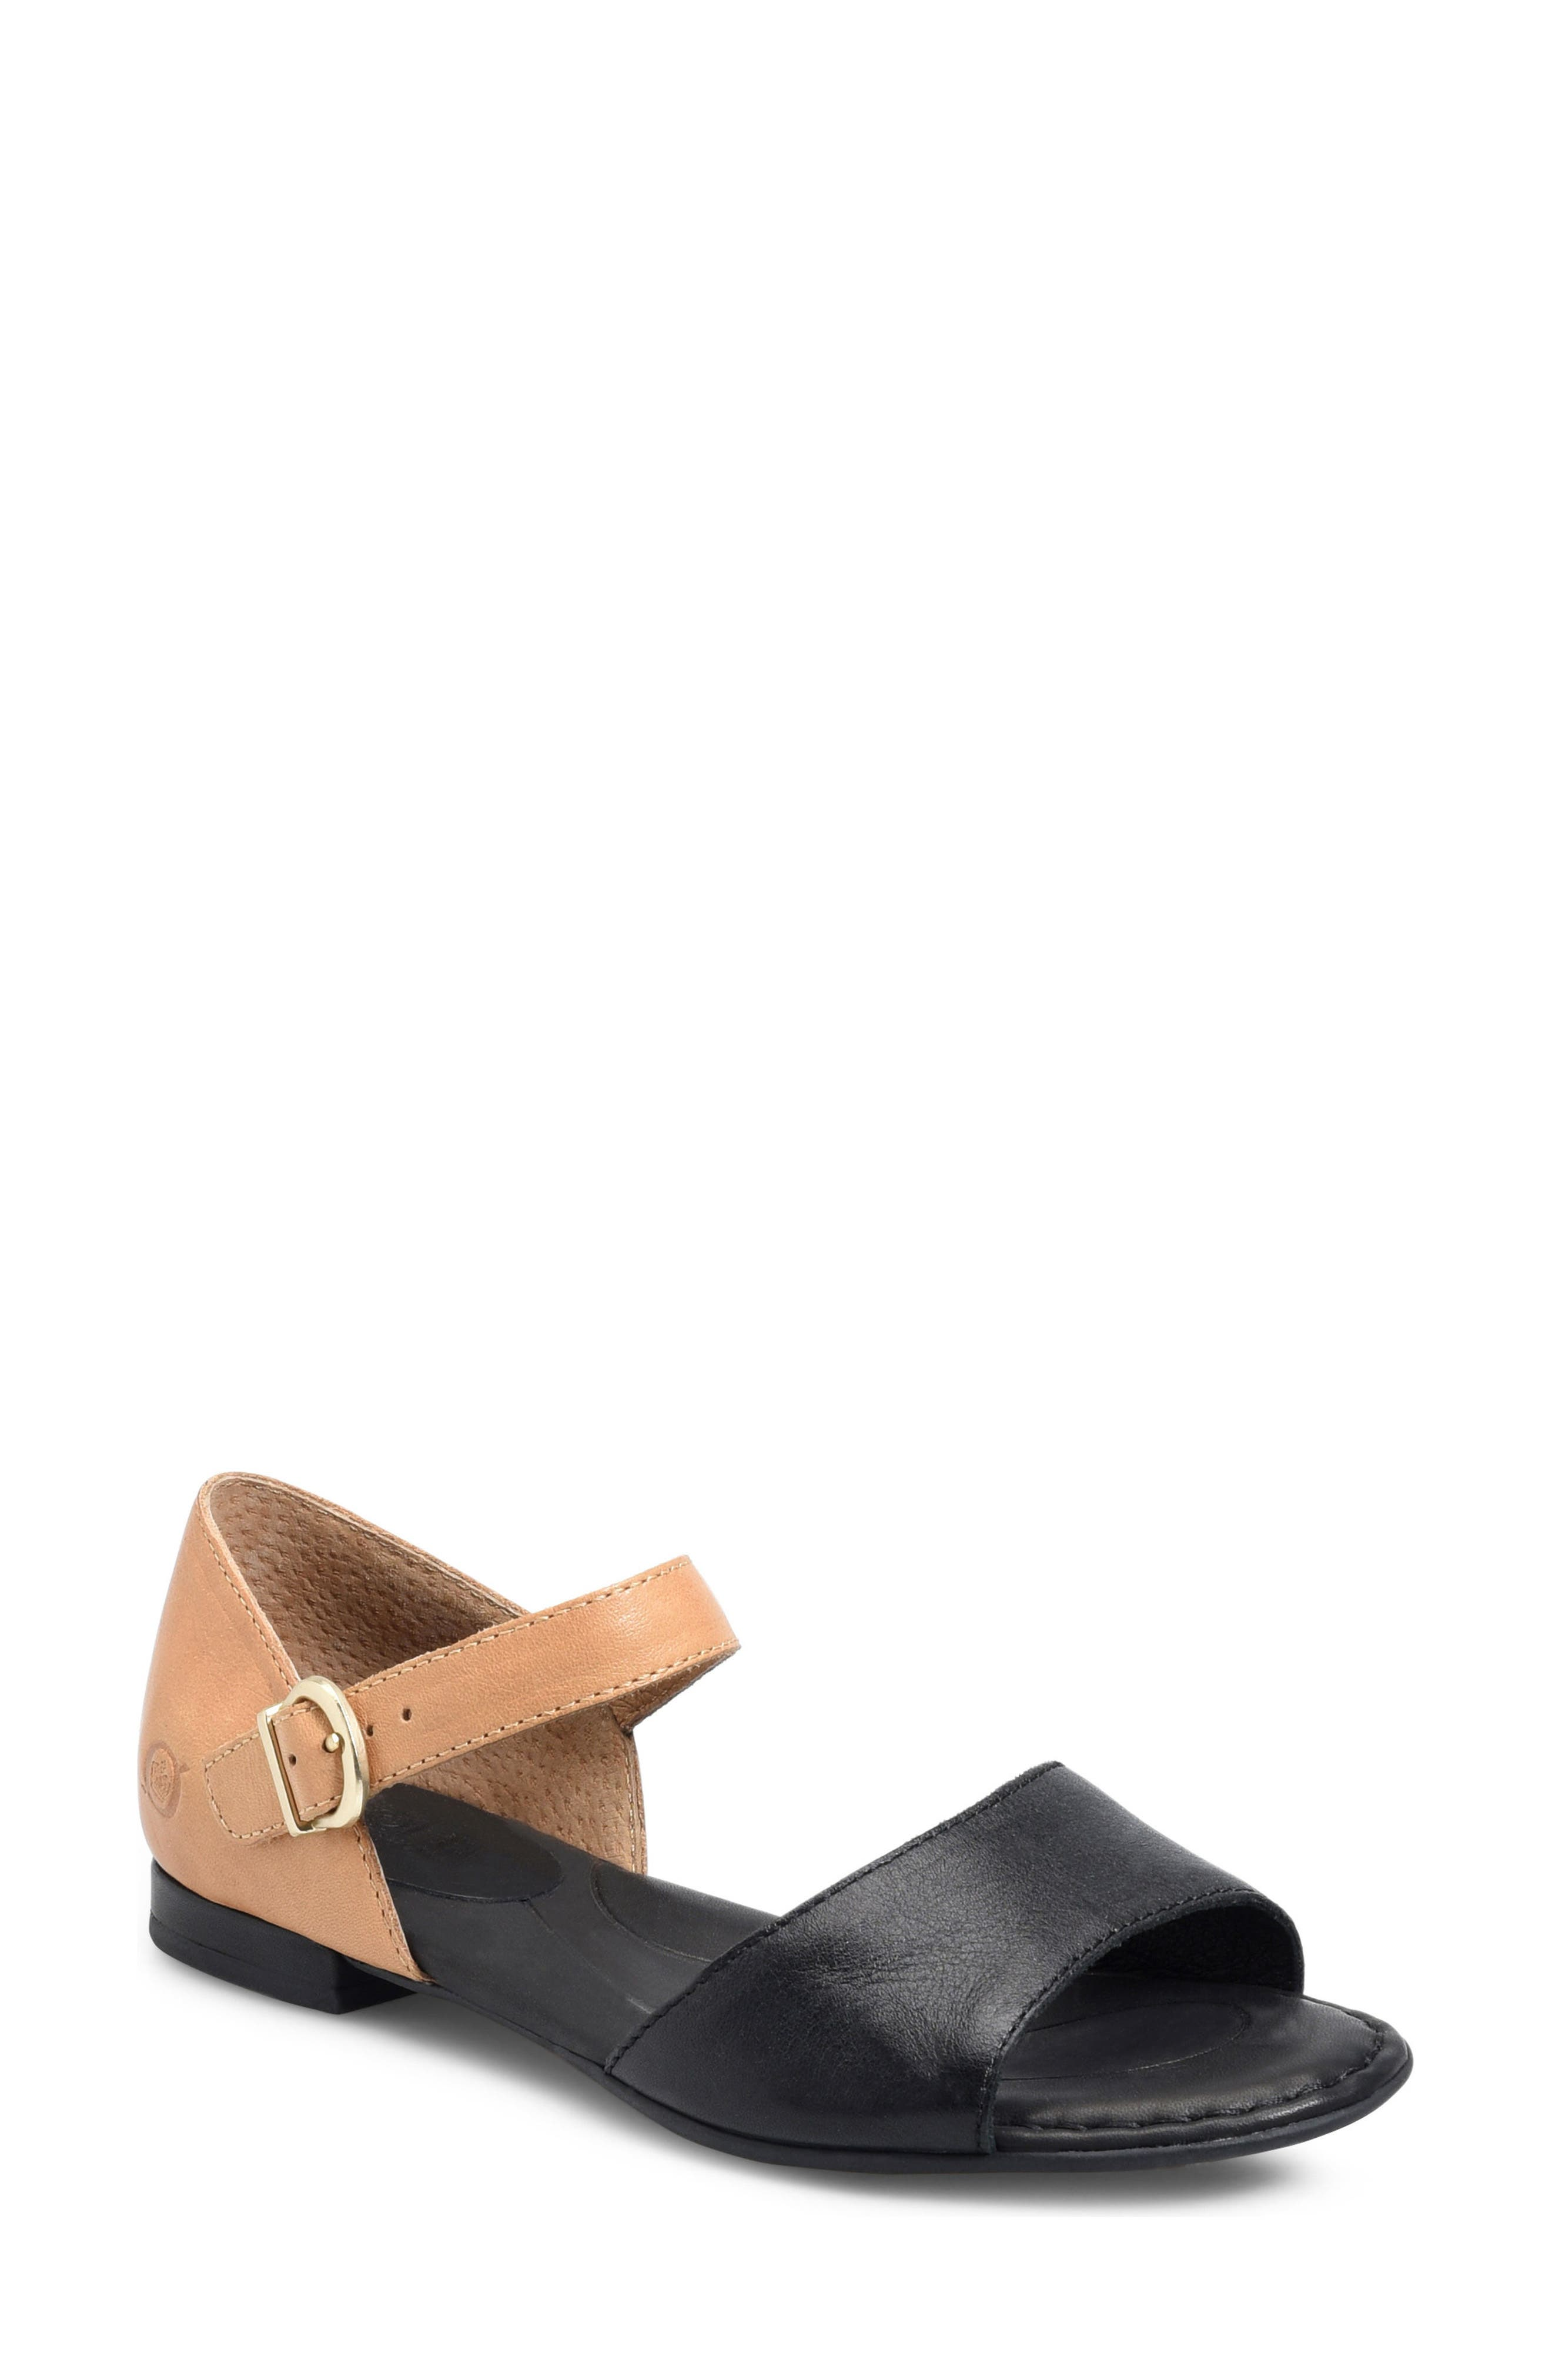 Cairo d'Orsay Sandal,                         Main,                         color, 001